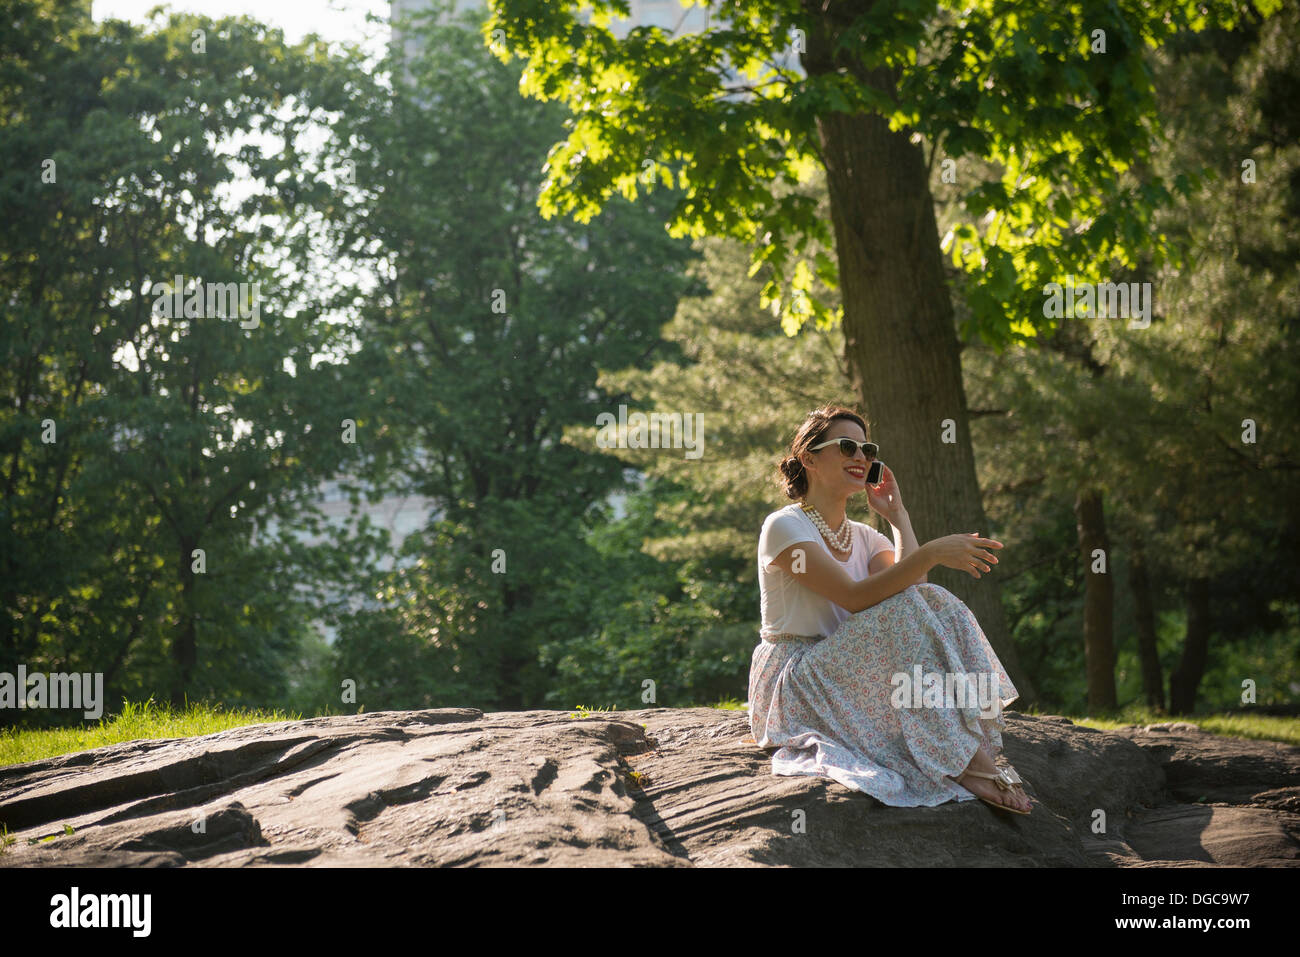 Mid adult women using mobile phone in Central Park, New York Photo Stock